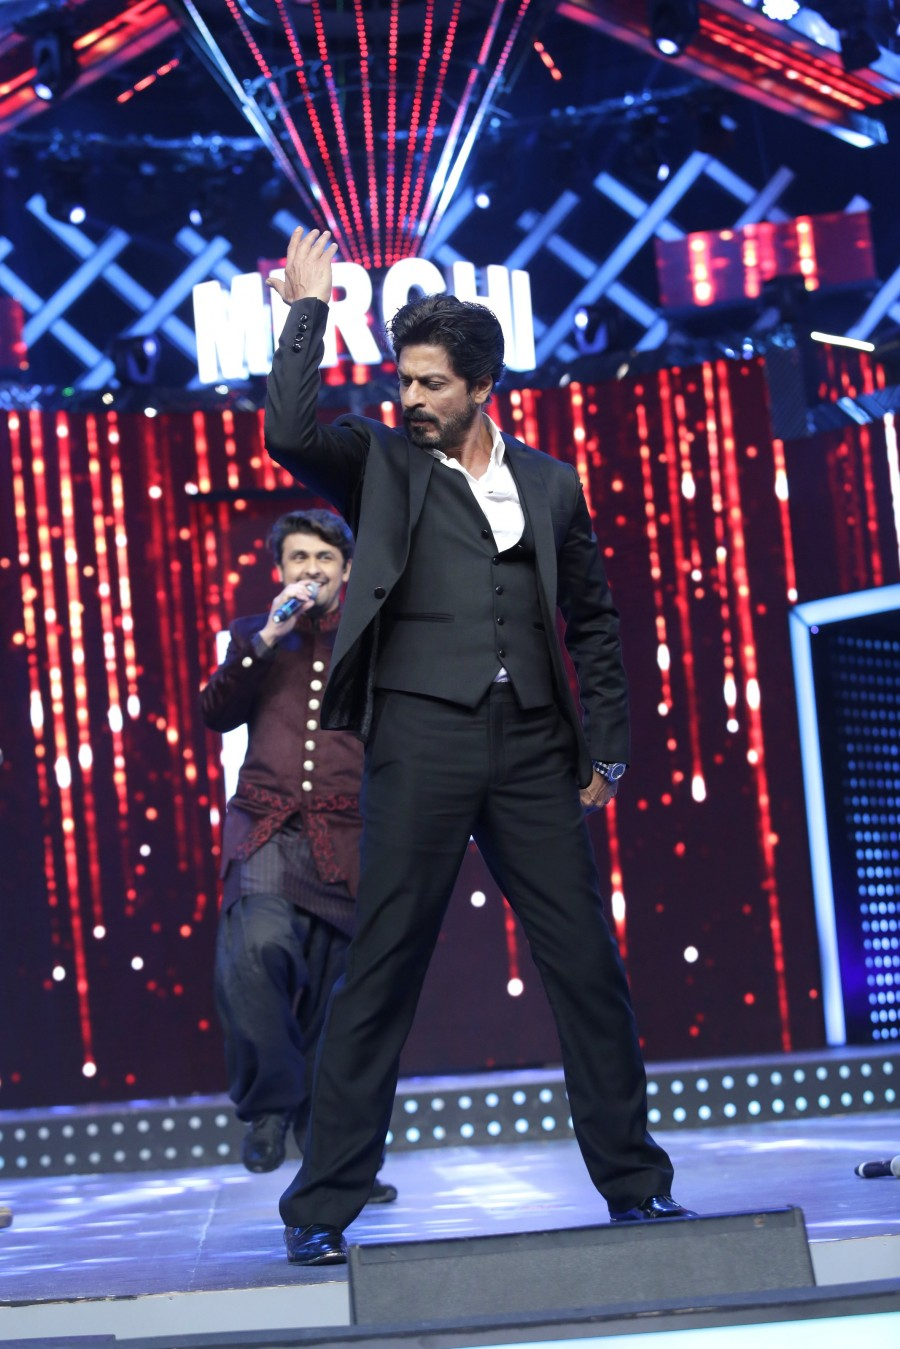 Mirchi Music Awards,Mirchi Music,8th mirchi music awards,Hrithik Roshan,Arjun Kapoor,Vidya Balan,Yo Yo Honey Singh,Taapsee Pannu,Urvashi Rautela,Dia Mirza,Radhika Apte,Neetu Chandra,Aditi Rao Hydari,Gauhar Khan,Gul Panag,Kanika Kapoor,Madhur Bhandarkar